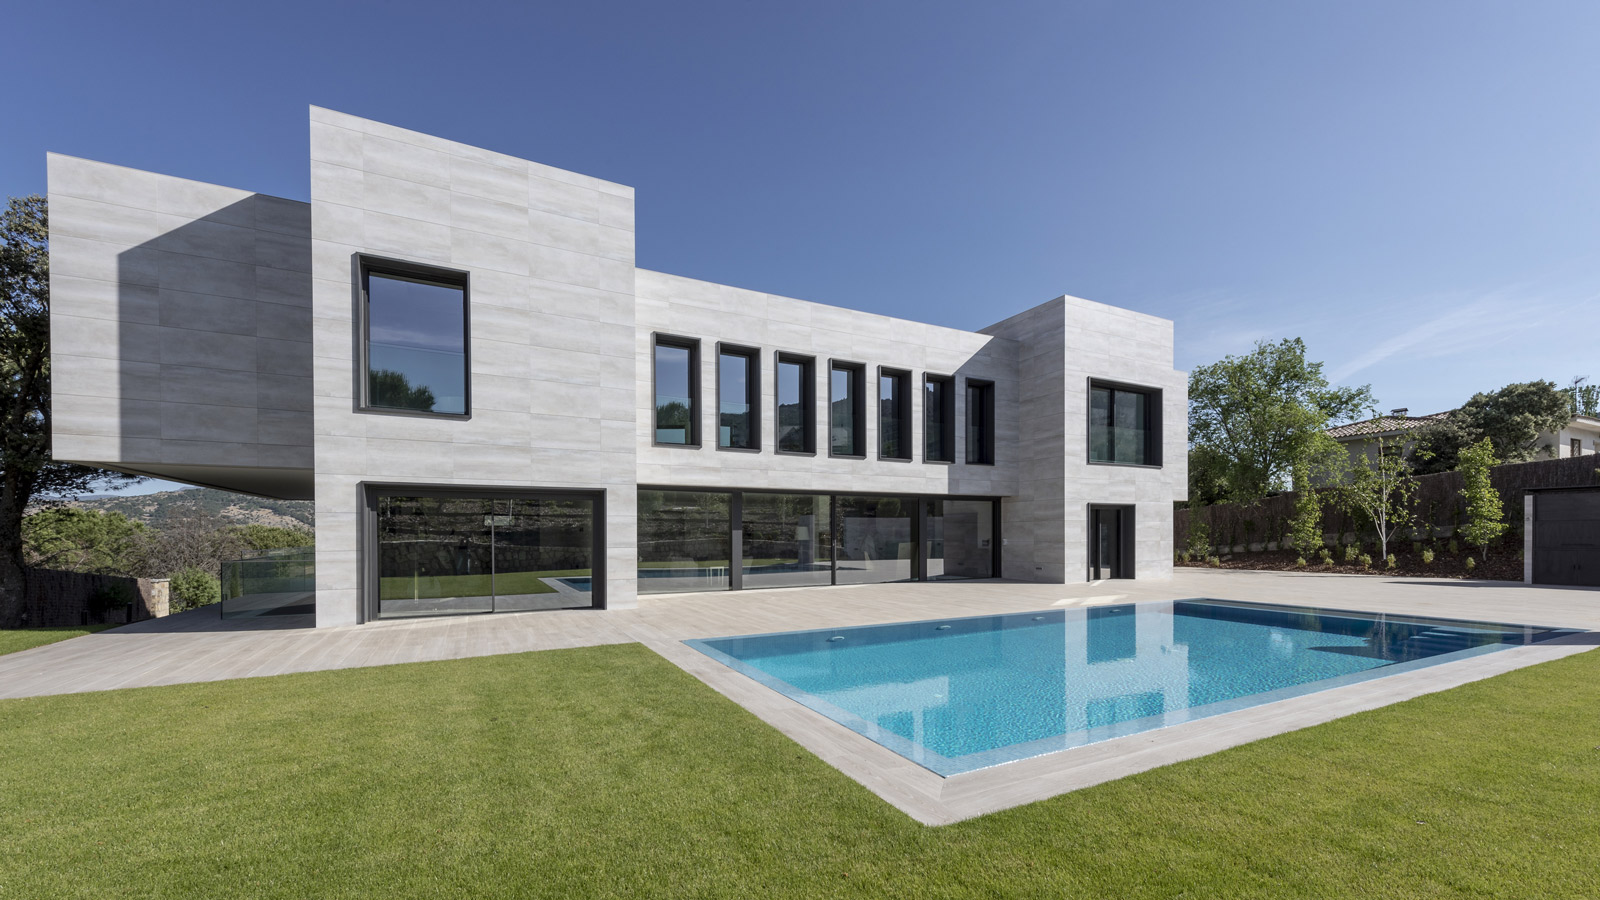 PORCELANOSA Group Projects: Volumetric architecture in the Sierra de Guadarrama